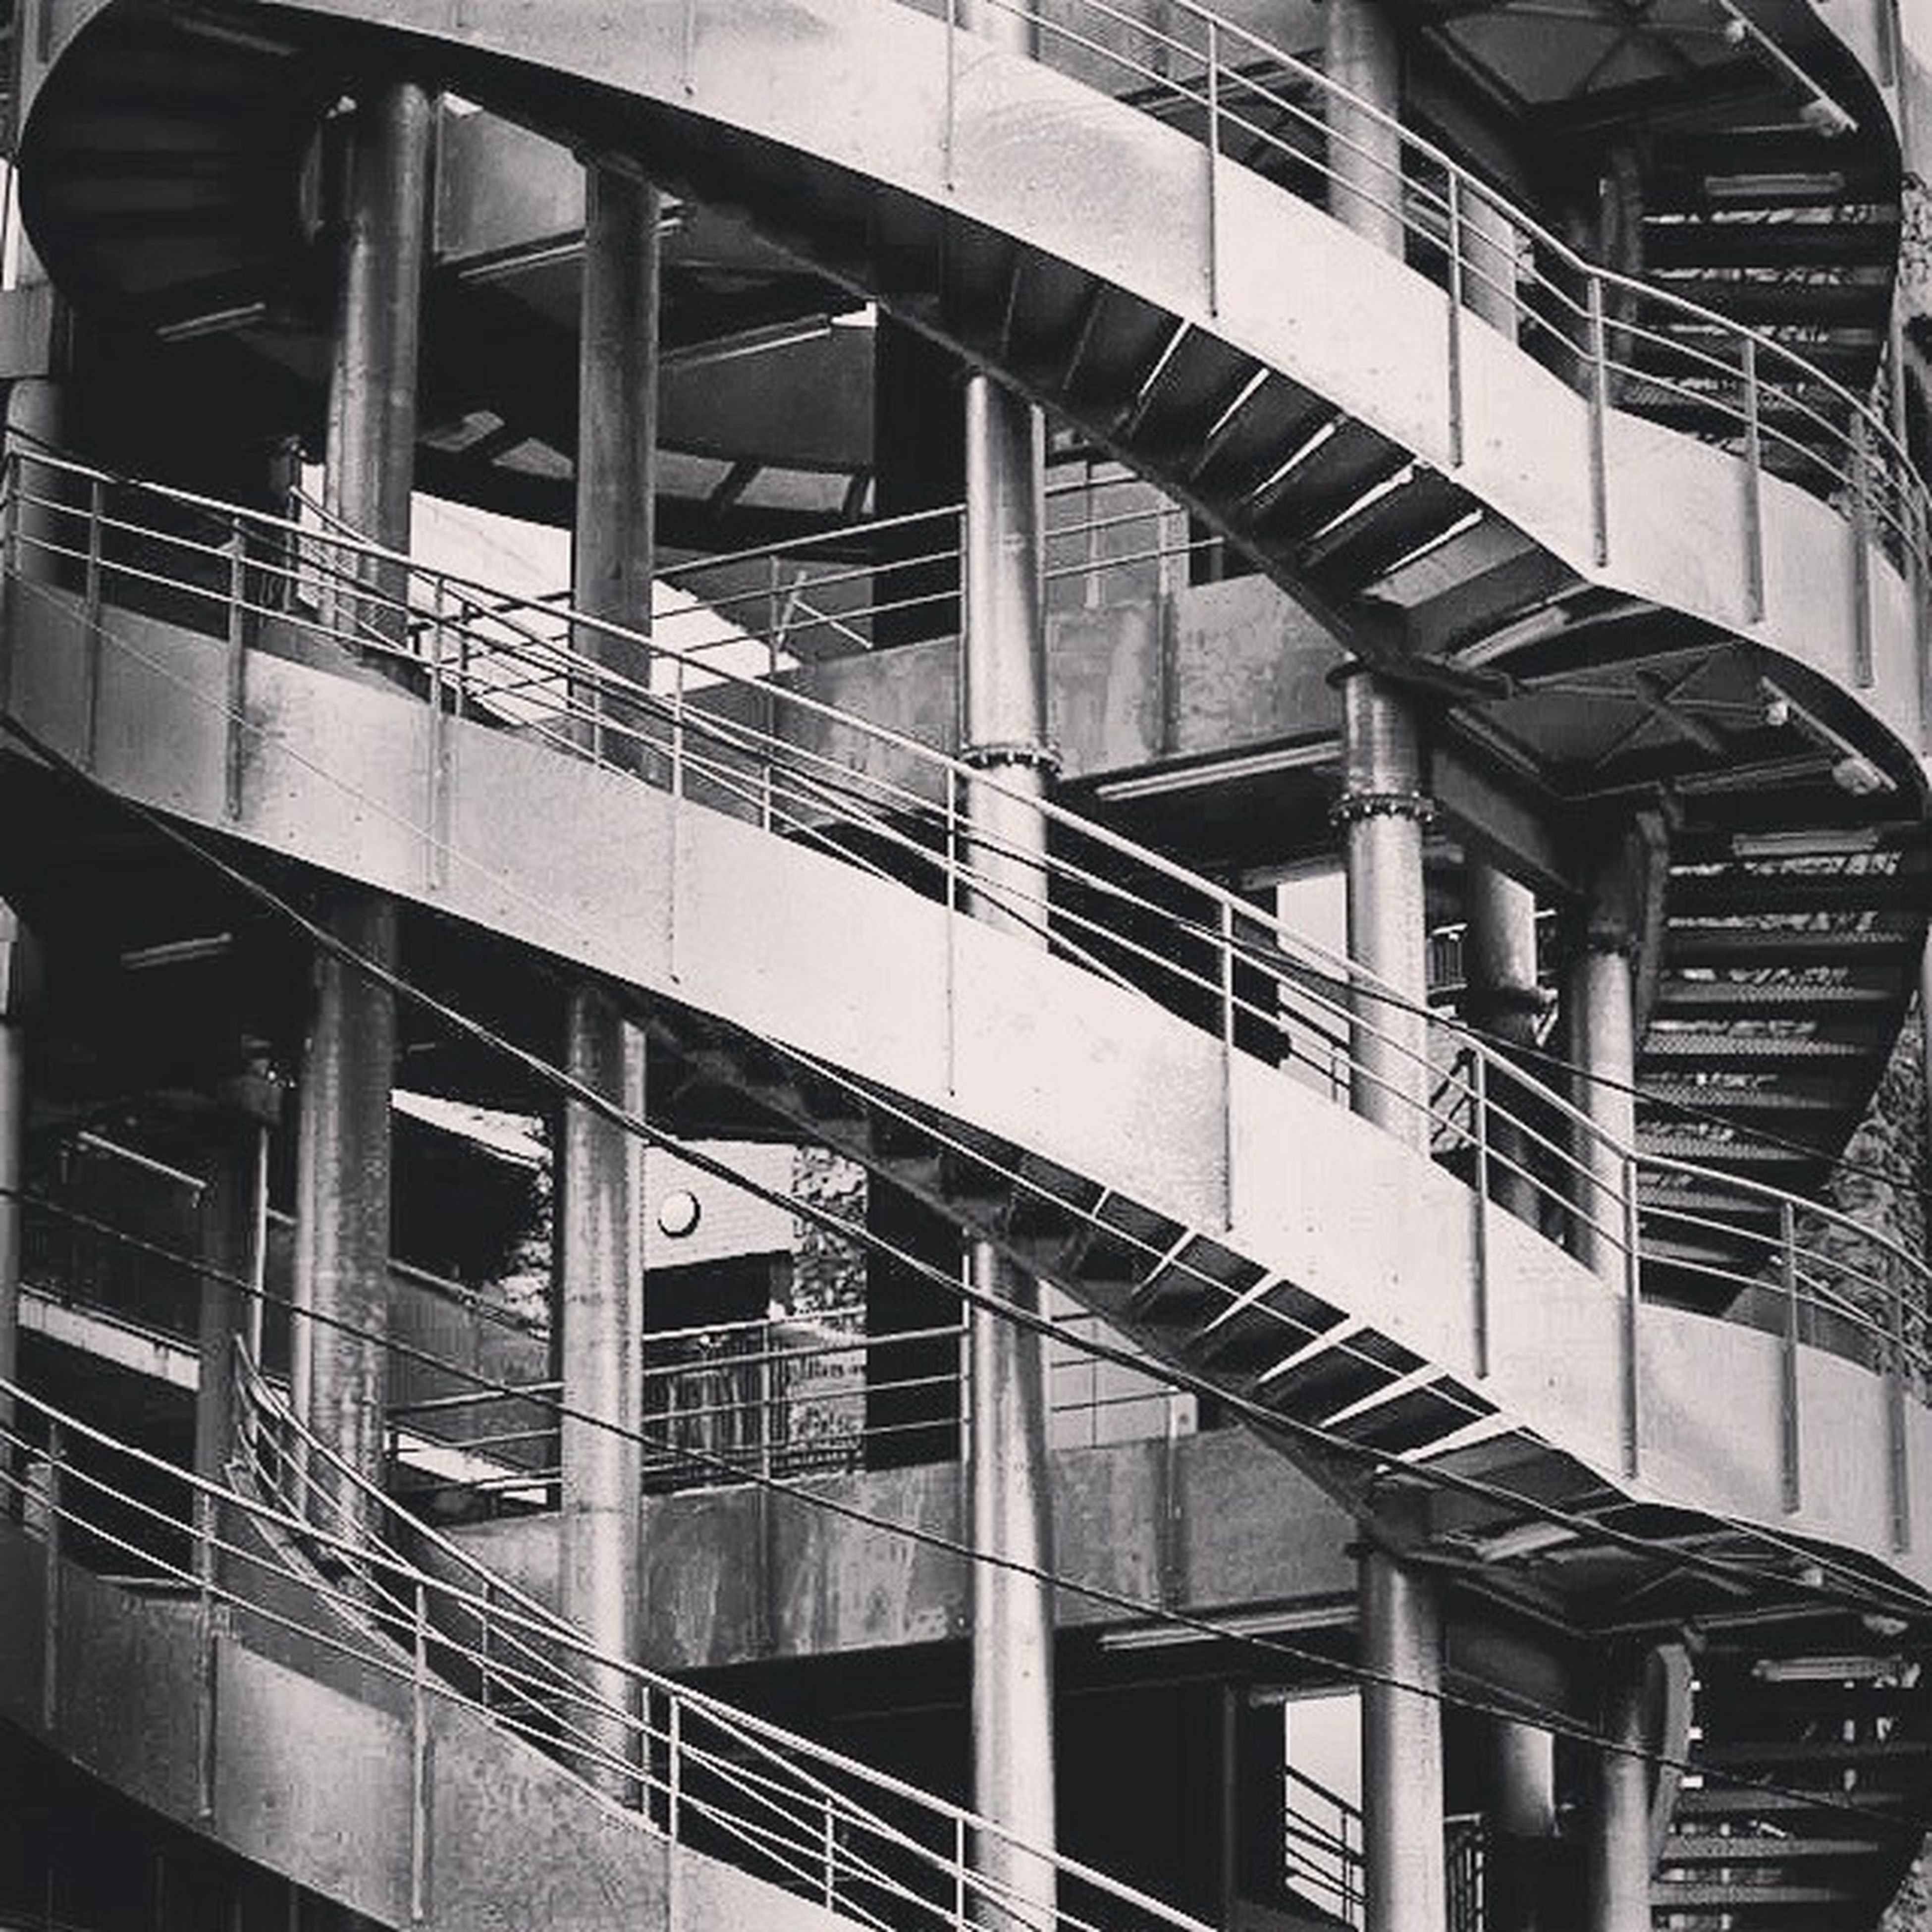 architecture, built structure, building exterior, transportation, railing, arch, rail transportation, public transportation, bridge - man made structure, staircase, connection, steps, railroad station, high angle view, indoors, travel, steps and staircases, building, train - vehicle, architectural column